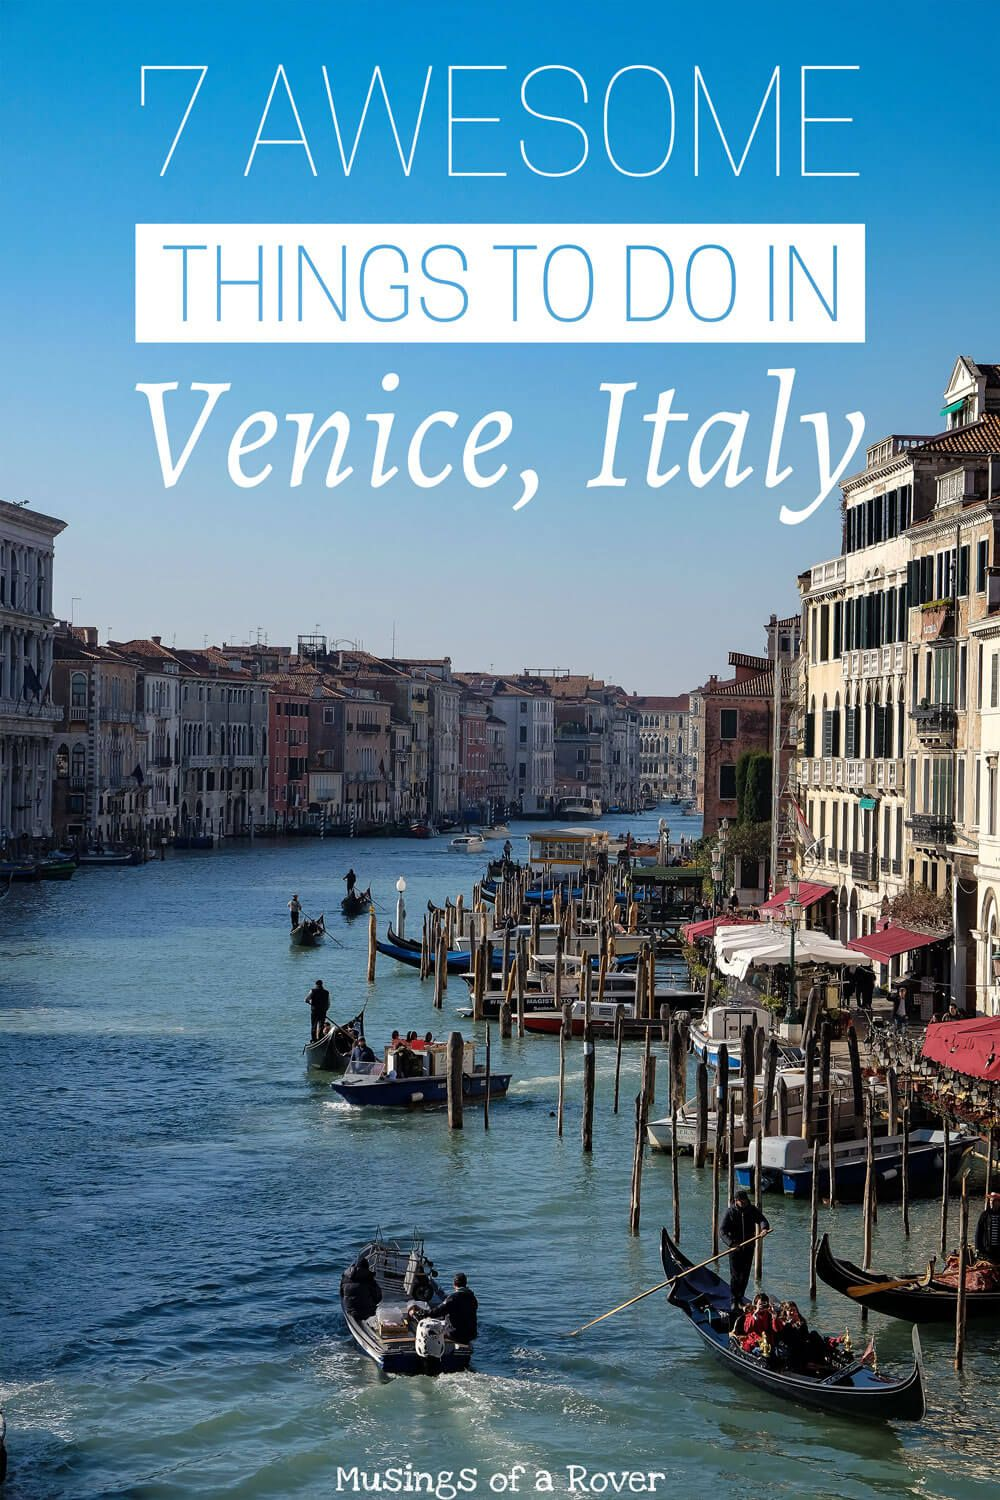 Heading to Venice, Italy? Check out this list for things to do! Including climbing the campanile for sunset, seeing San Marco Square, exploring the Doge Palace, riding in a vaporetto, eating cicchetti, and more. italy, venice, italy travel, venice travel, italy things to do, venice things to do